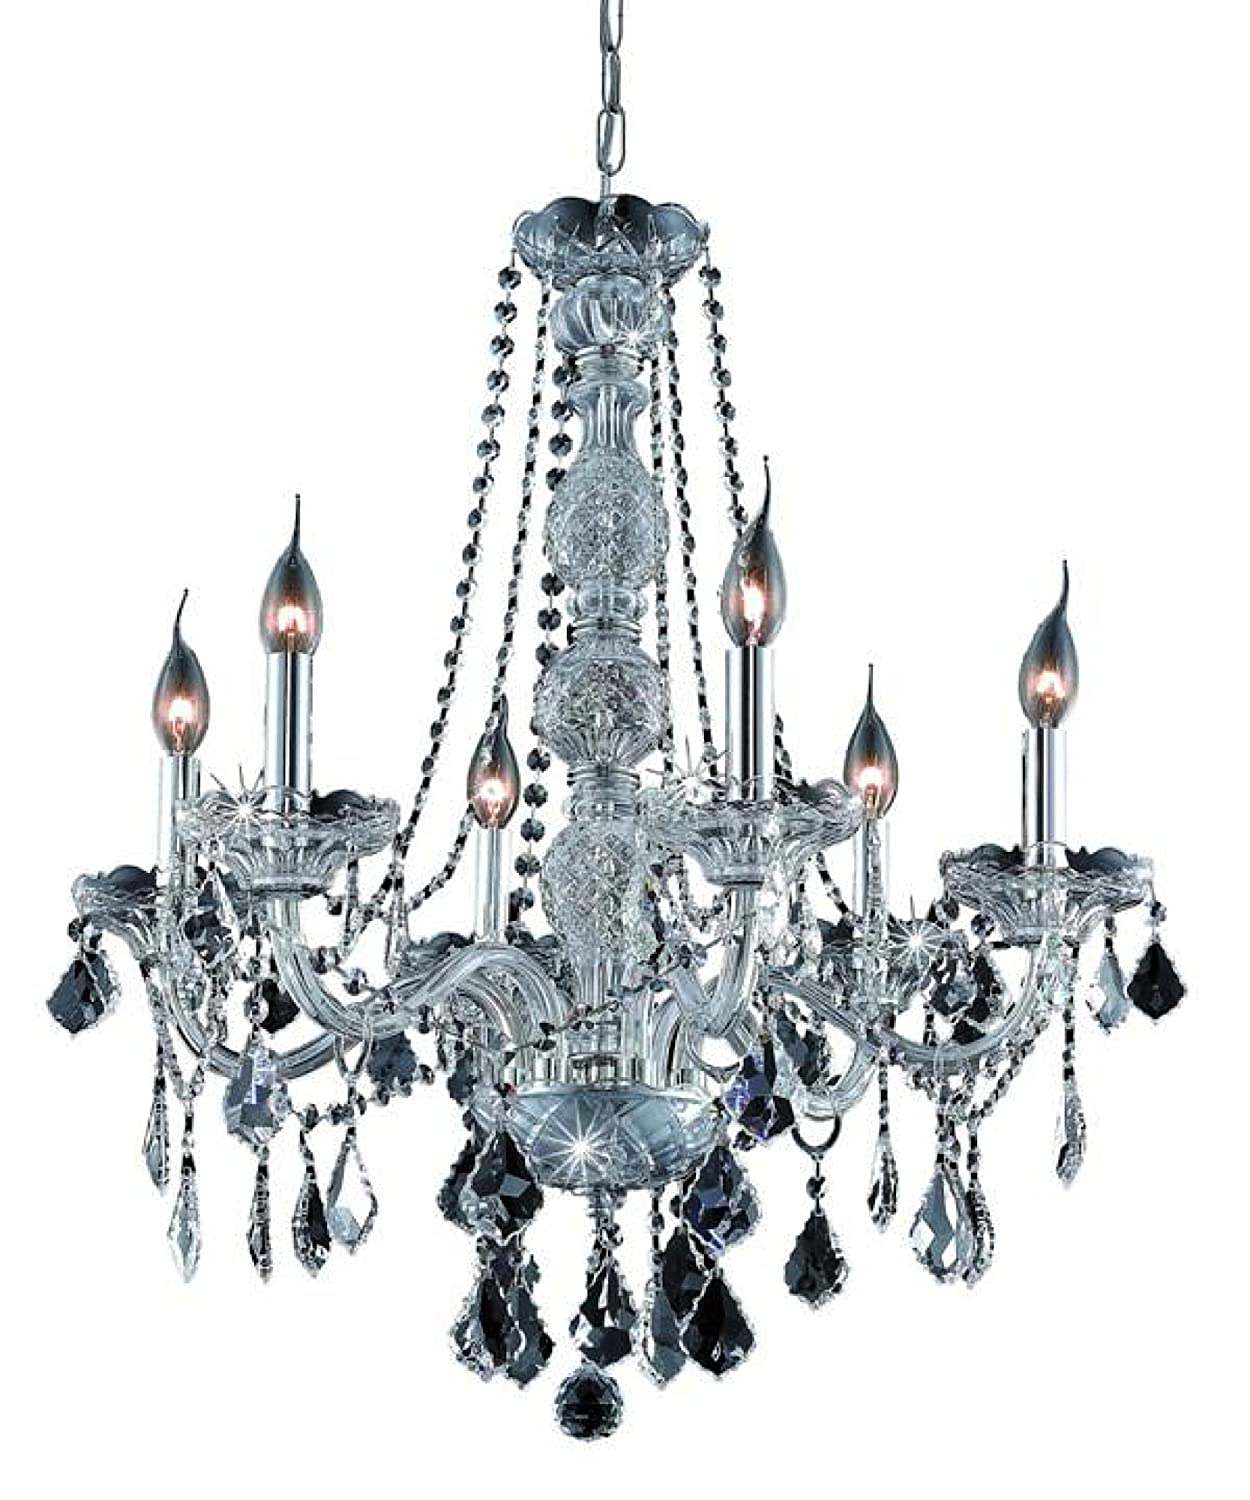 Elegant Lighting 7856D24SS-SS RC Verona 28-Inch High 6-Light Chandelier, Silver Shade Finish with Silver Shade Grey Royal Cut RC Crystal